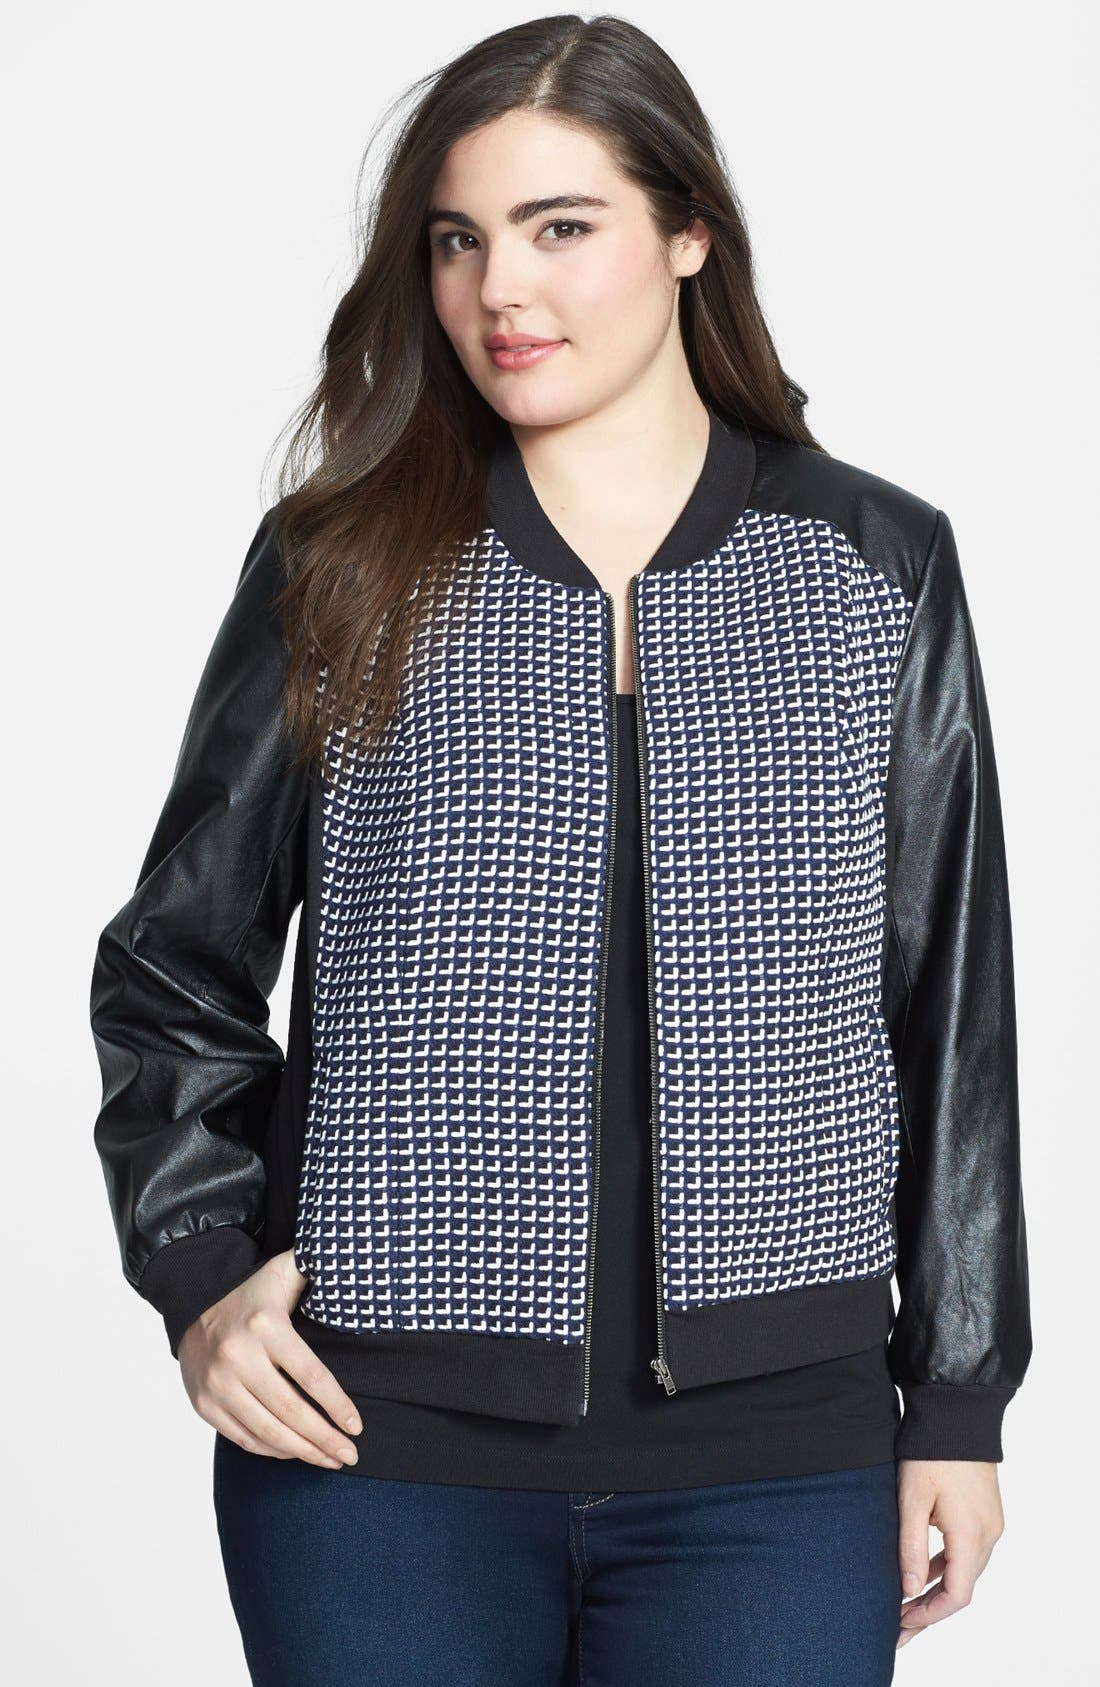 Alternate Image 1 Selected - Sejour 'Costal' Tweed & Faux Leather Bomber Jacket (Plus Size)